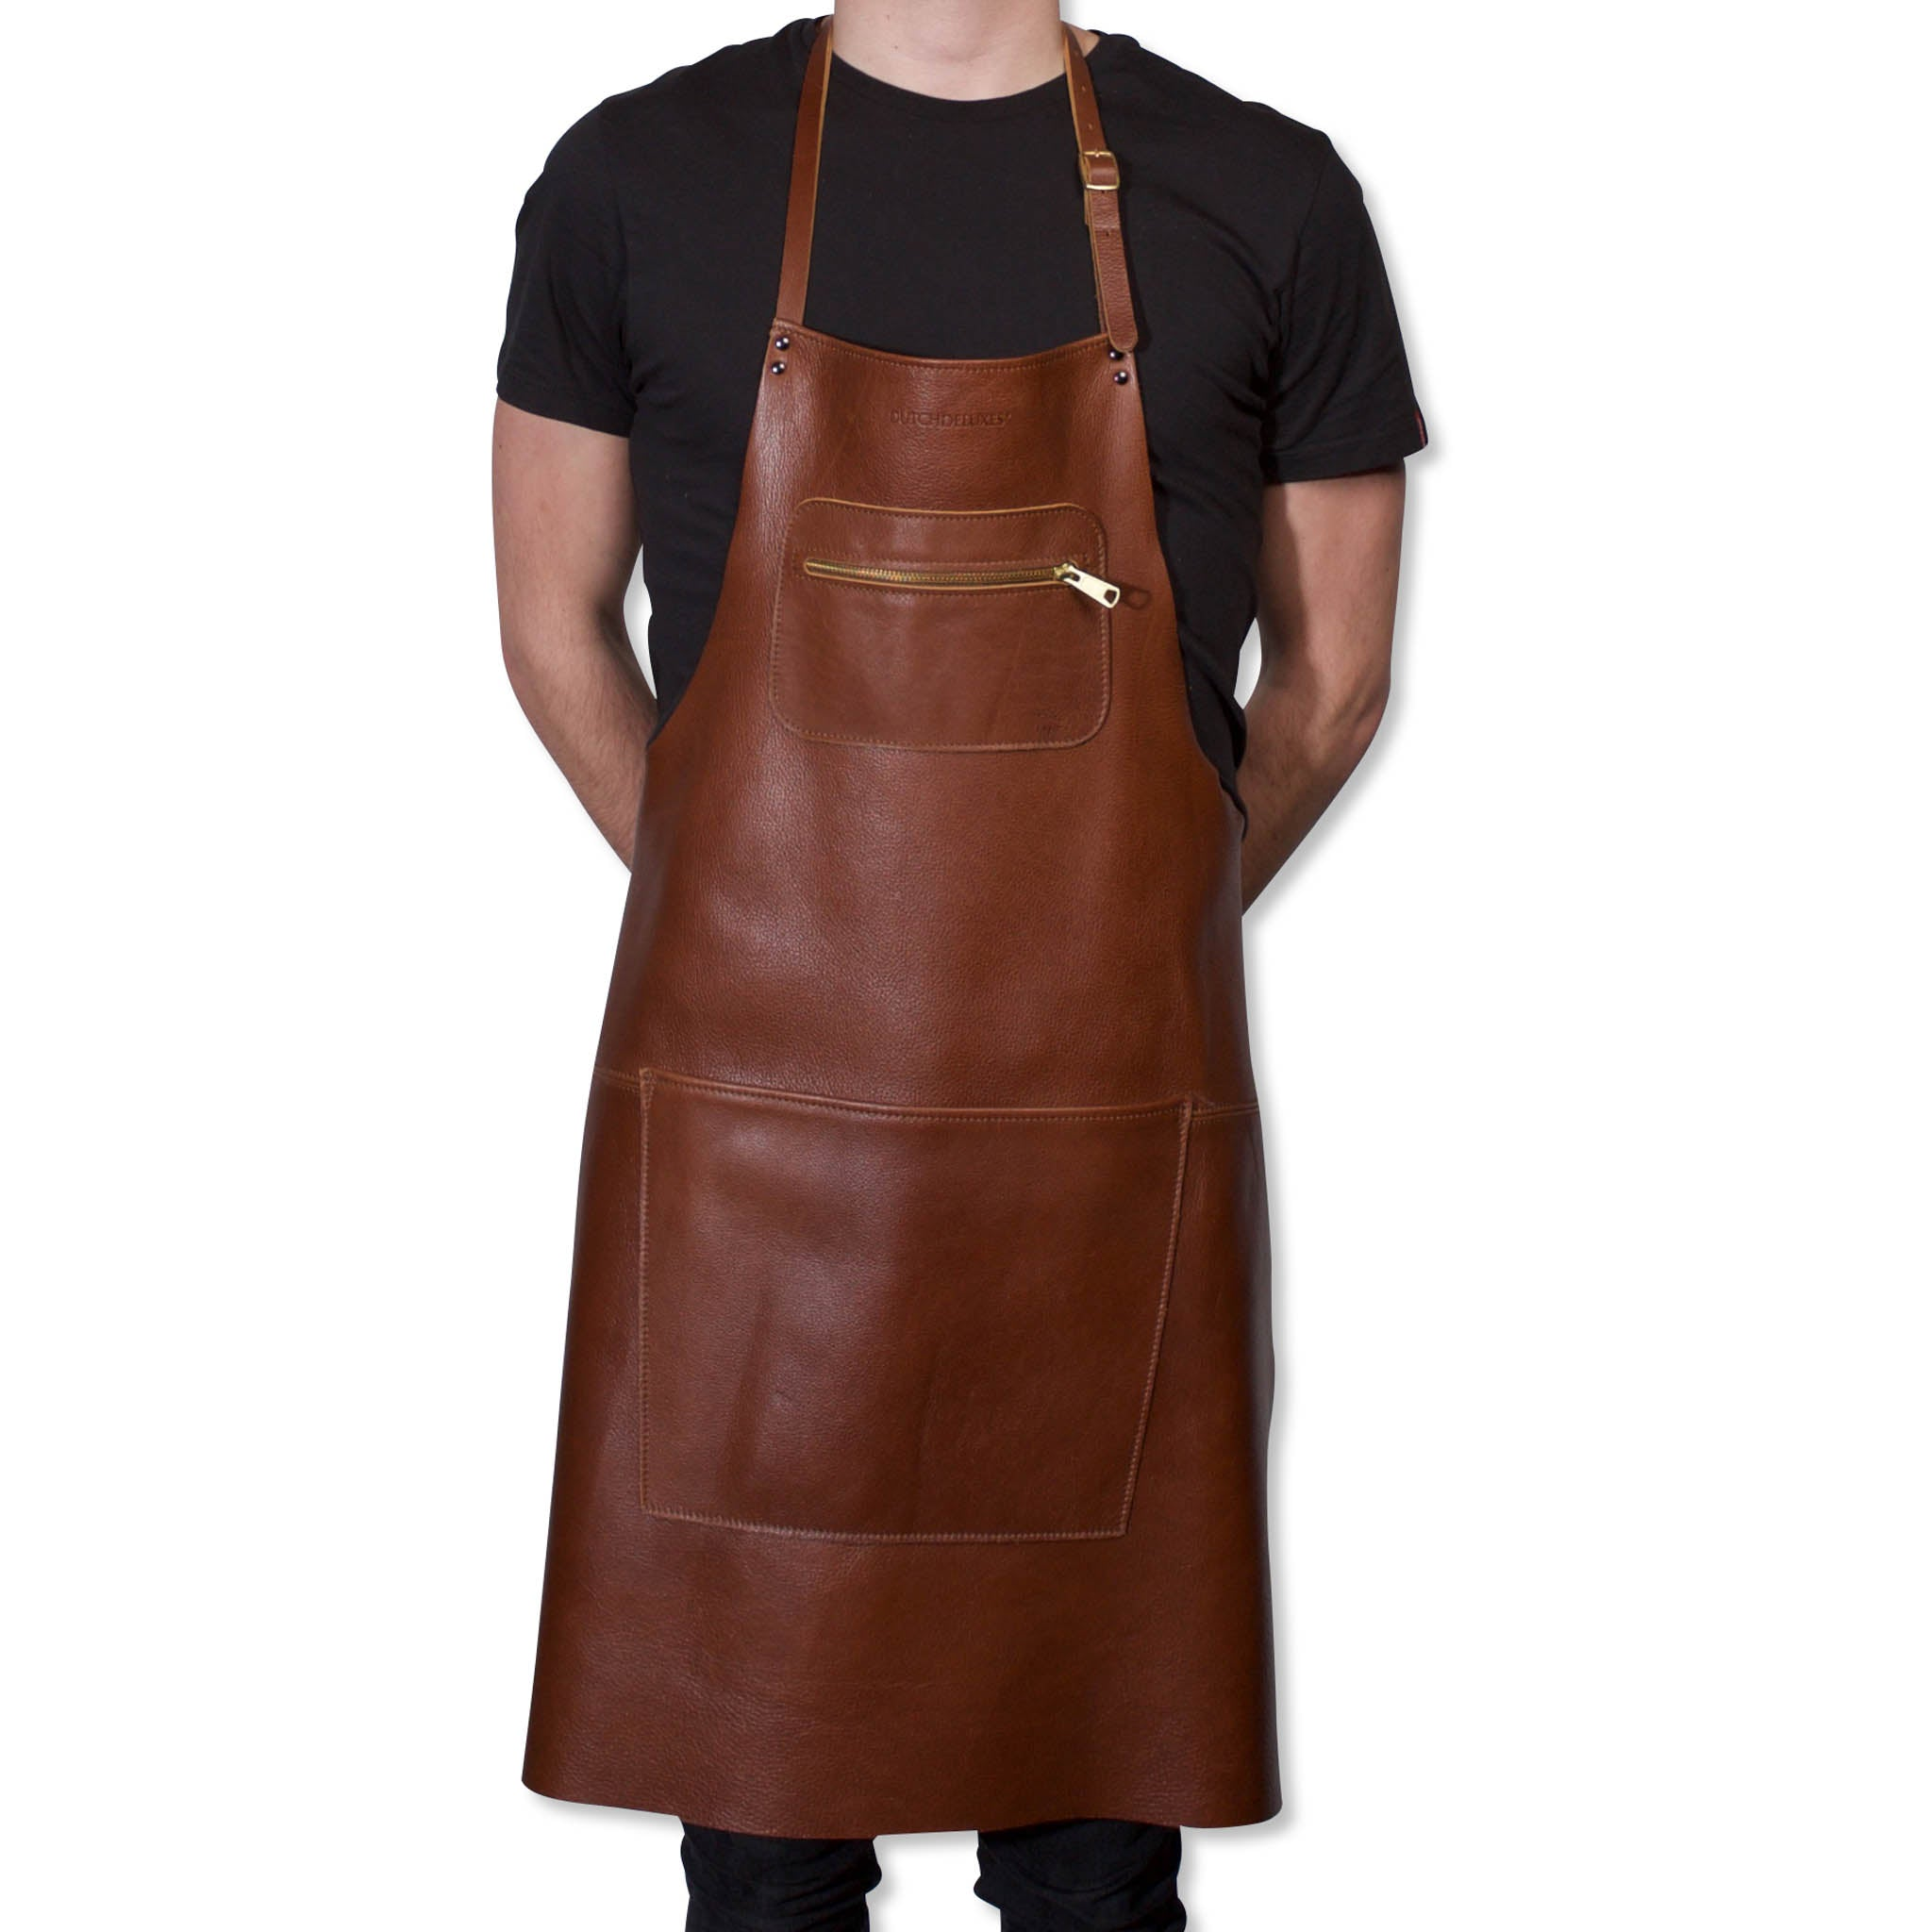 Dutchdeluxes Leather Zipper Apron in Classic Brown